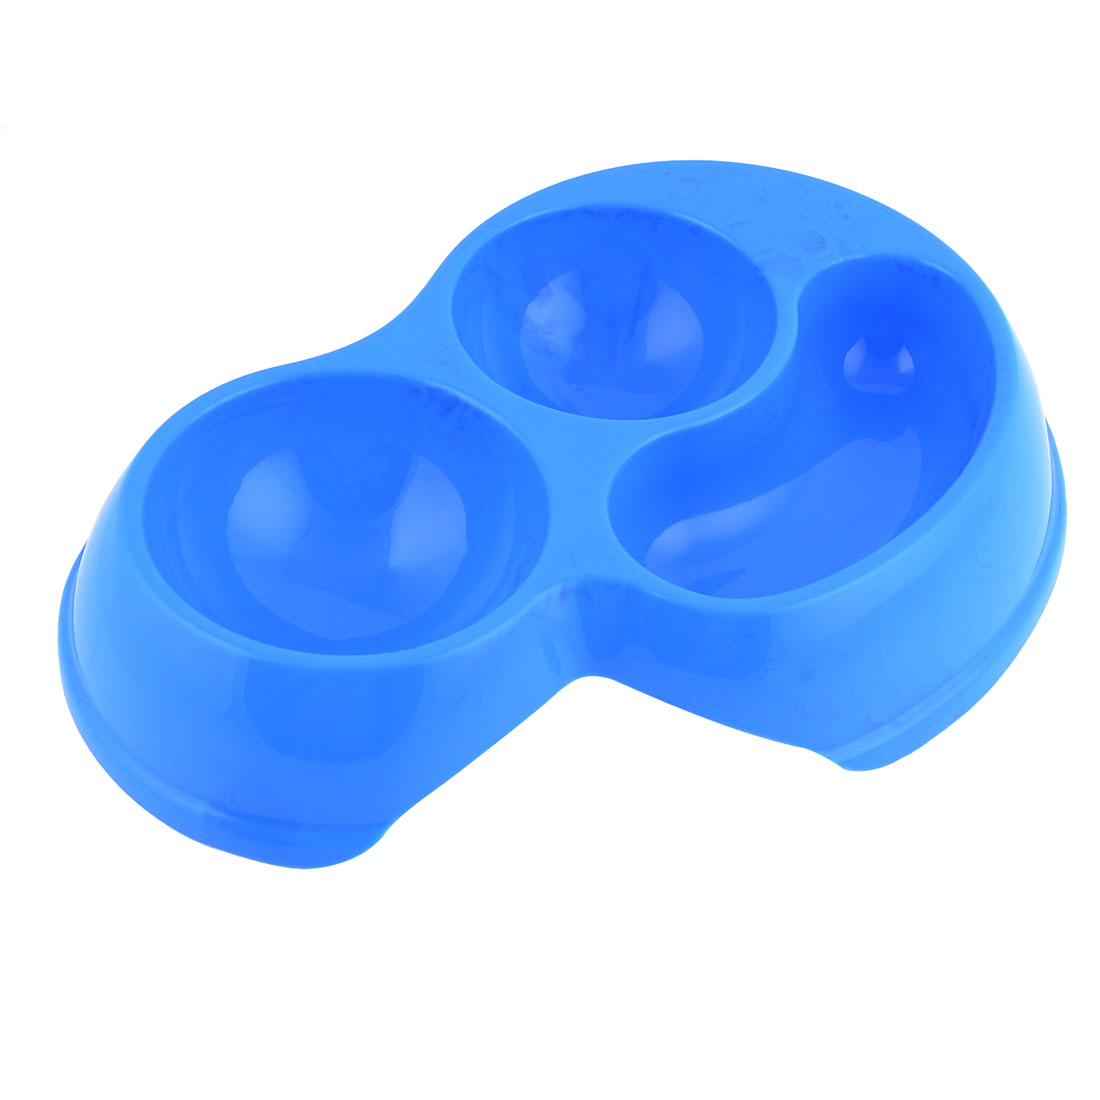 Plastic 3 in 1 Bowl Feeder Food Water Dish Blue for Pet Dog Cat